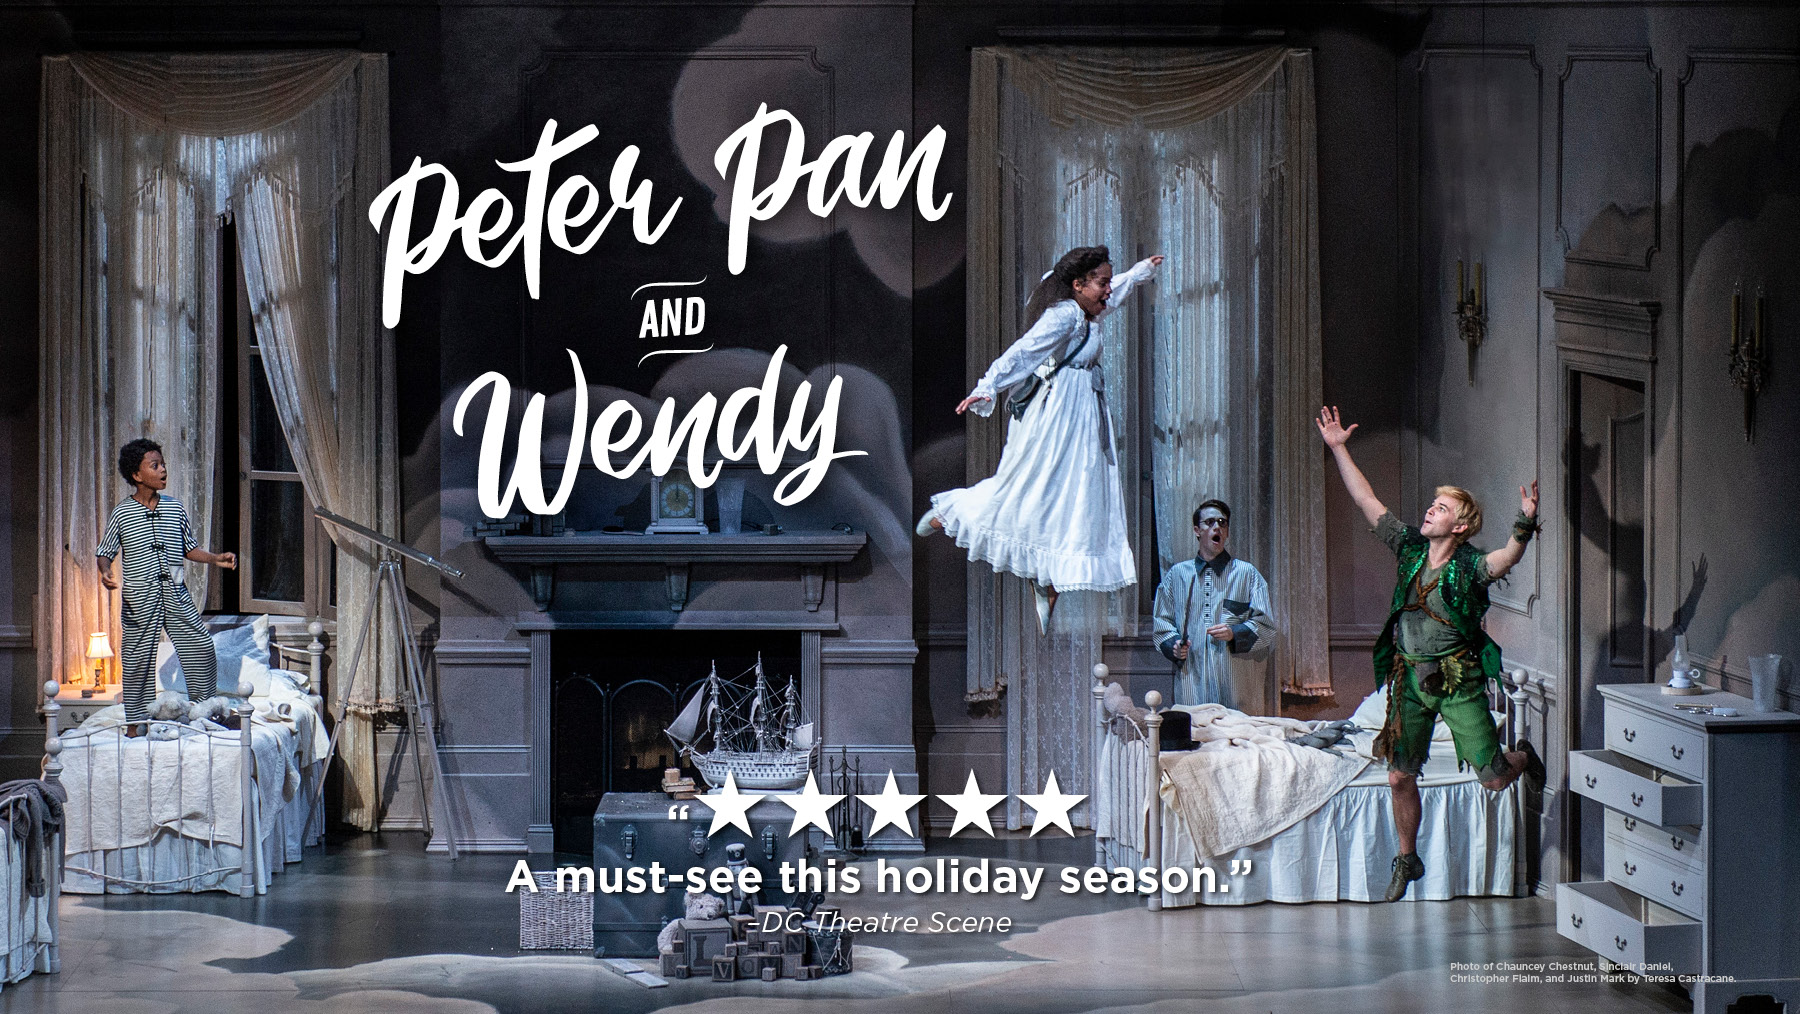 Shakespeare Theatre Company Peter Pan And Wendy